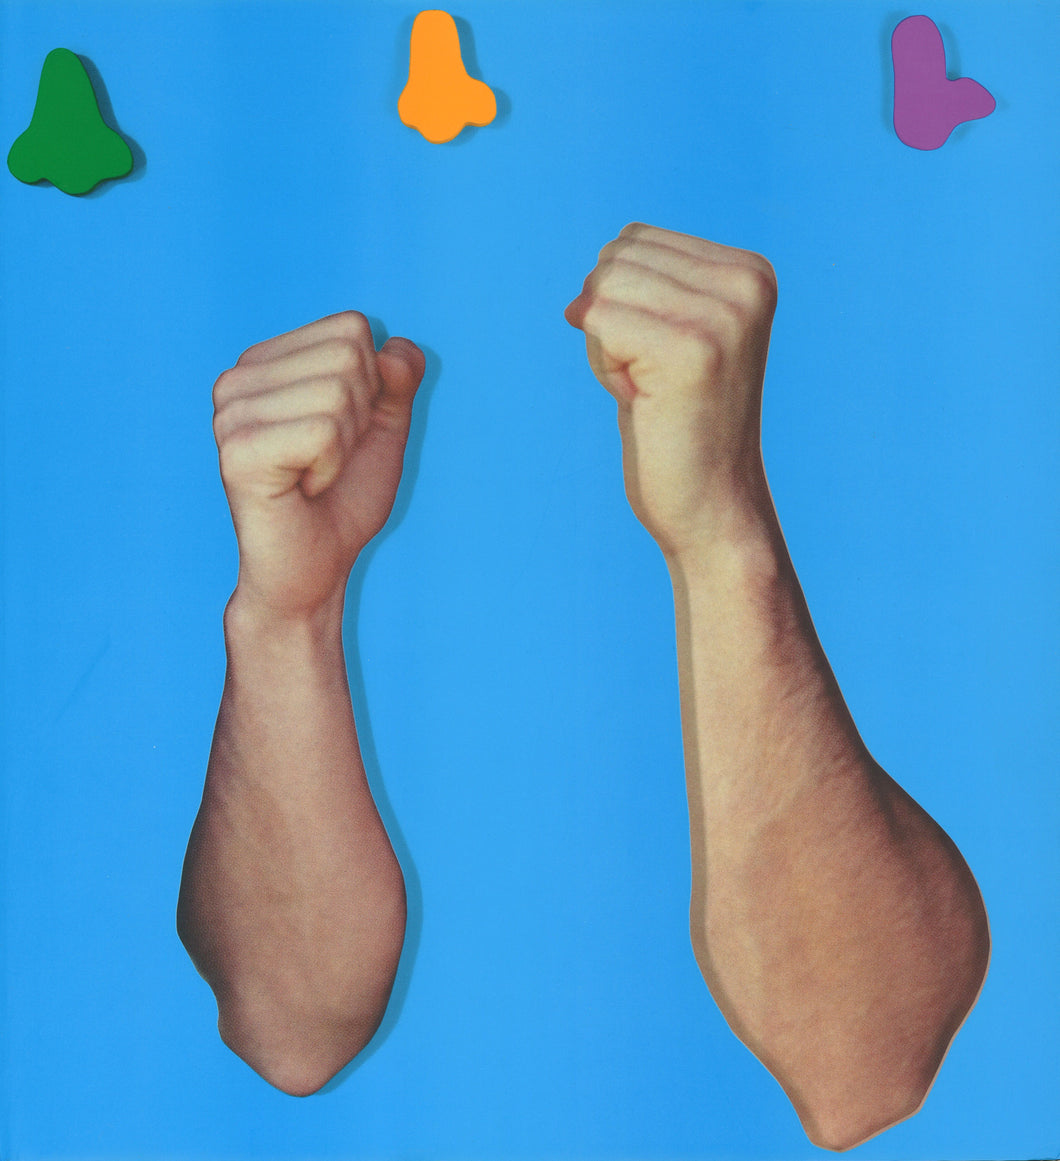 John Baldessari: Arms & Legs (Specif. Elbows & Knees), Etc.